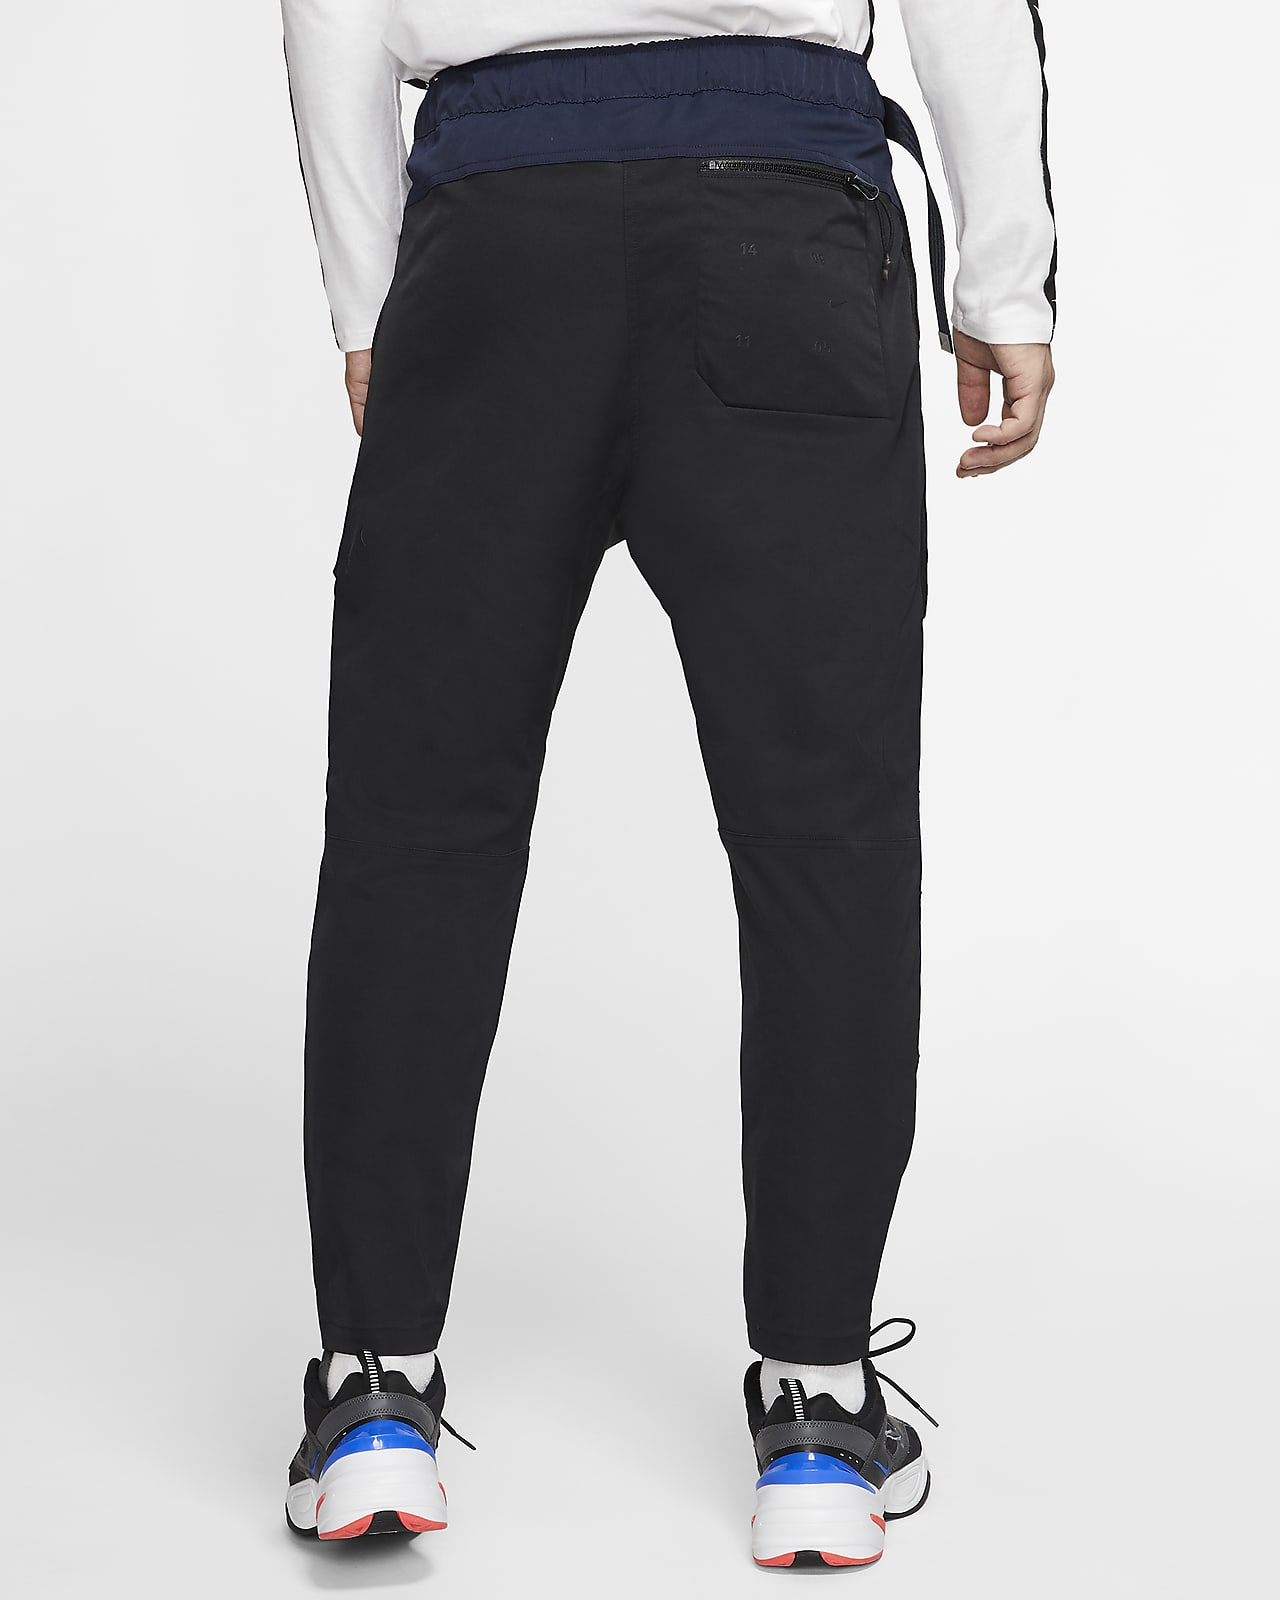 L-XXL NIKE SPORTSWEAR TECH PACK WOVEN TRACK MEN/'S PANTS 927991 010 SIZE